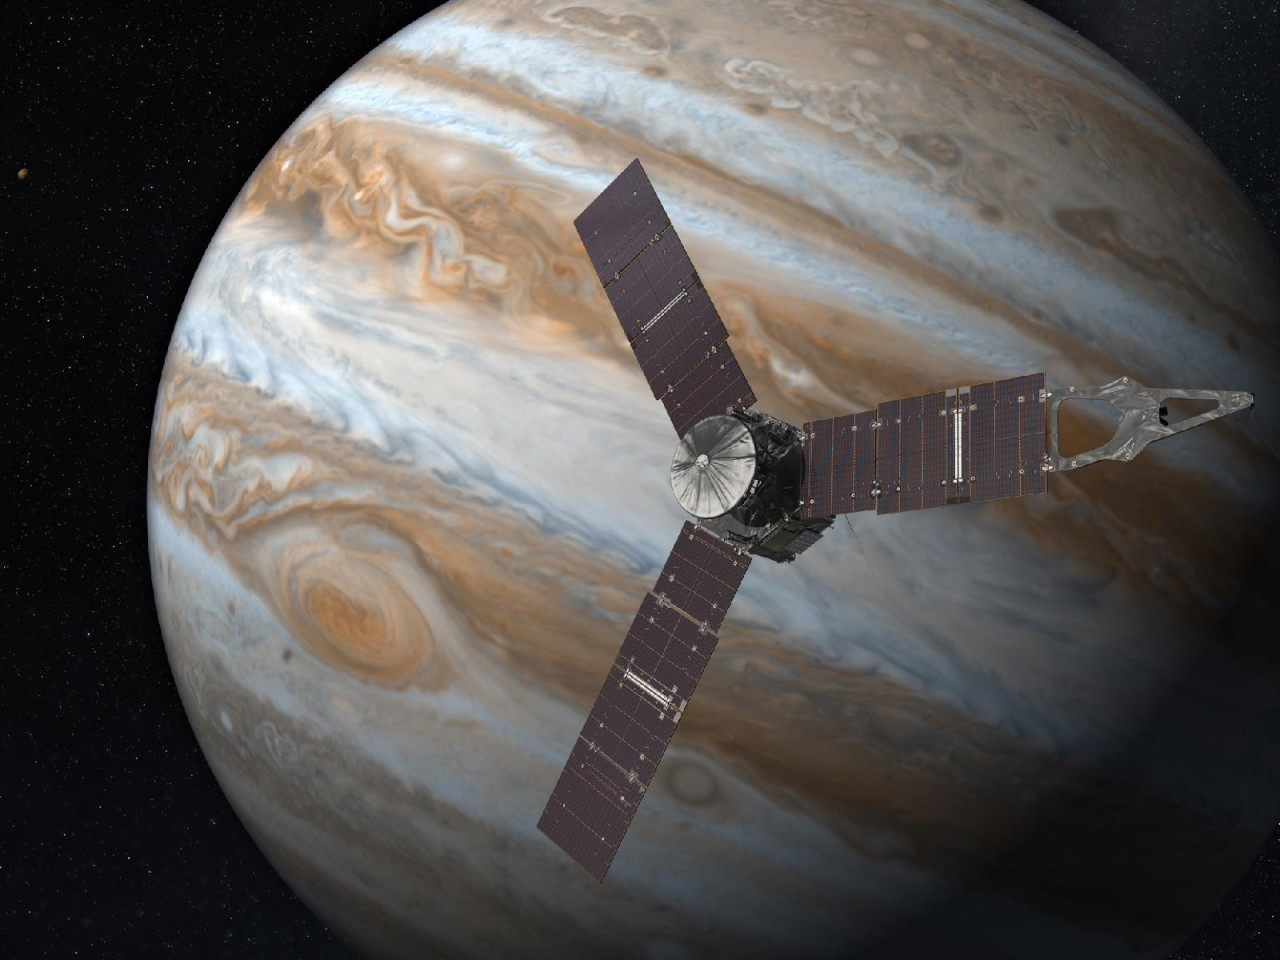 NASA extends Juno probe mission to better study Jupiter and its moons by 2025